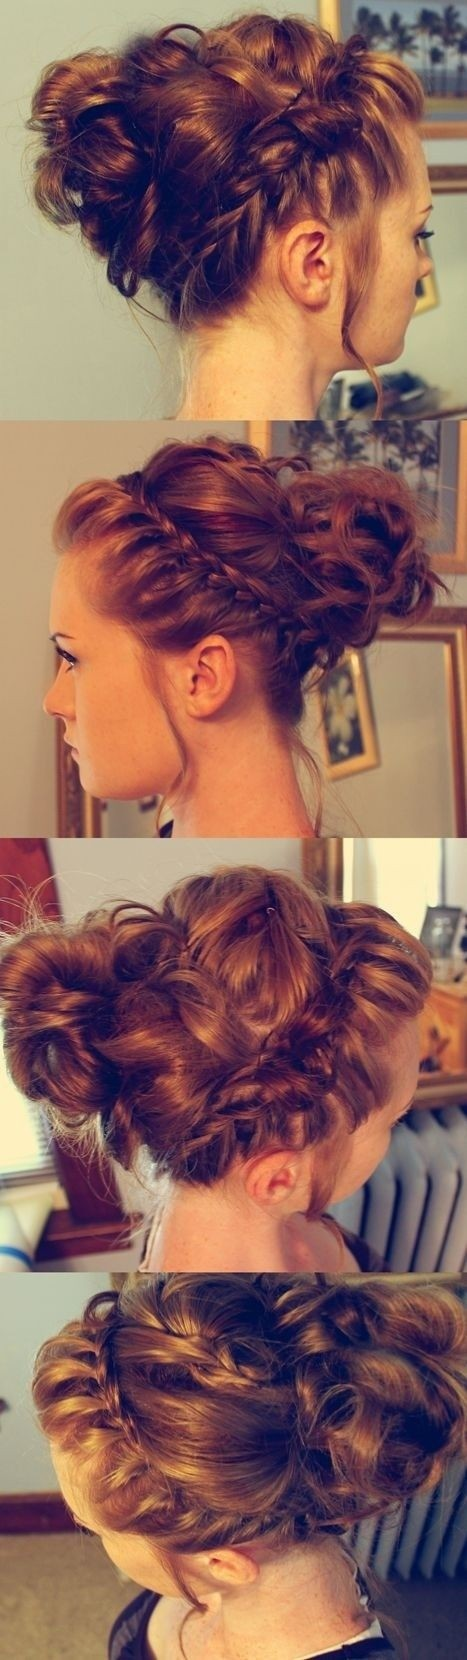 Trendy Braided Updos - Fantastic New Dance Hairstyles